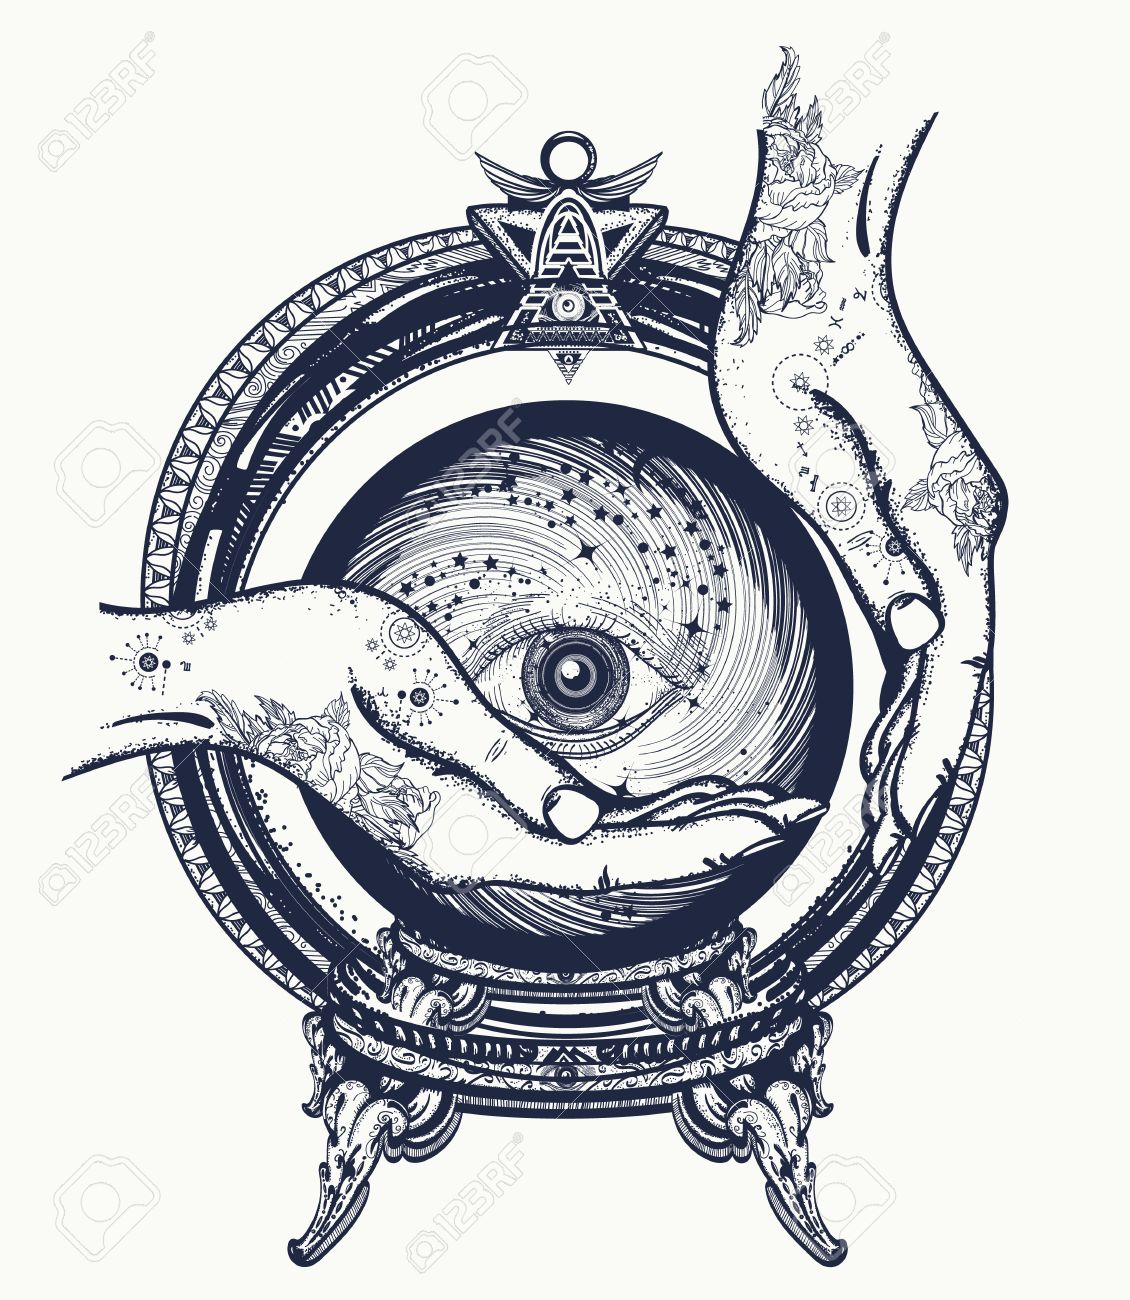 Fortune teller tattoo, crystal ball in their hands  Foretelling